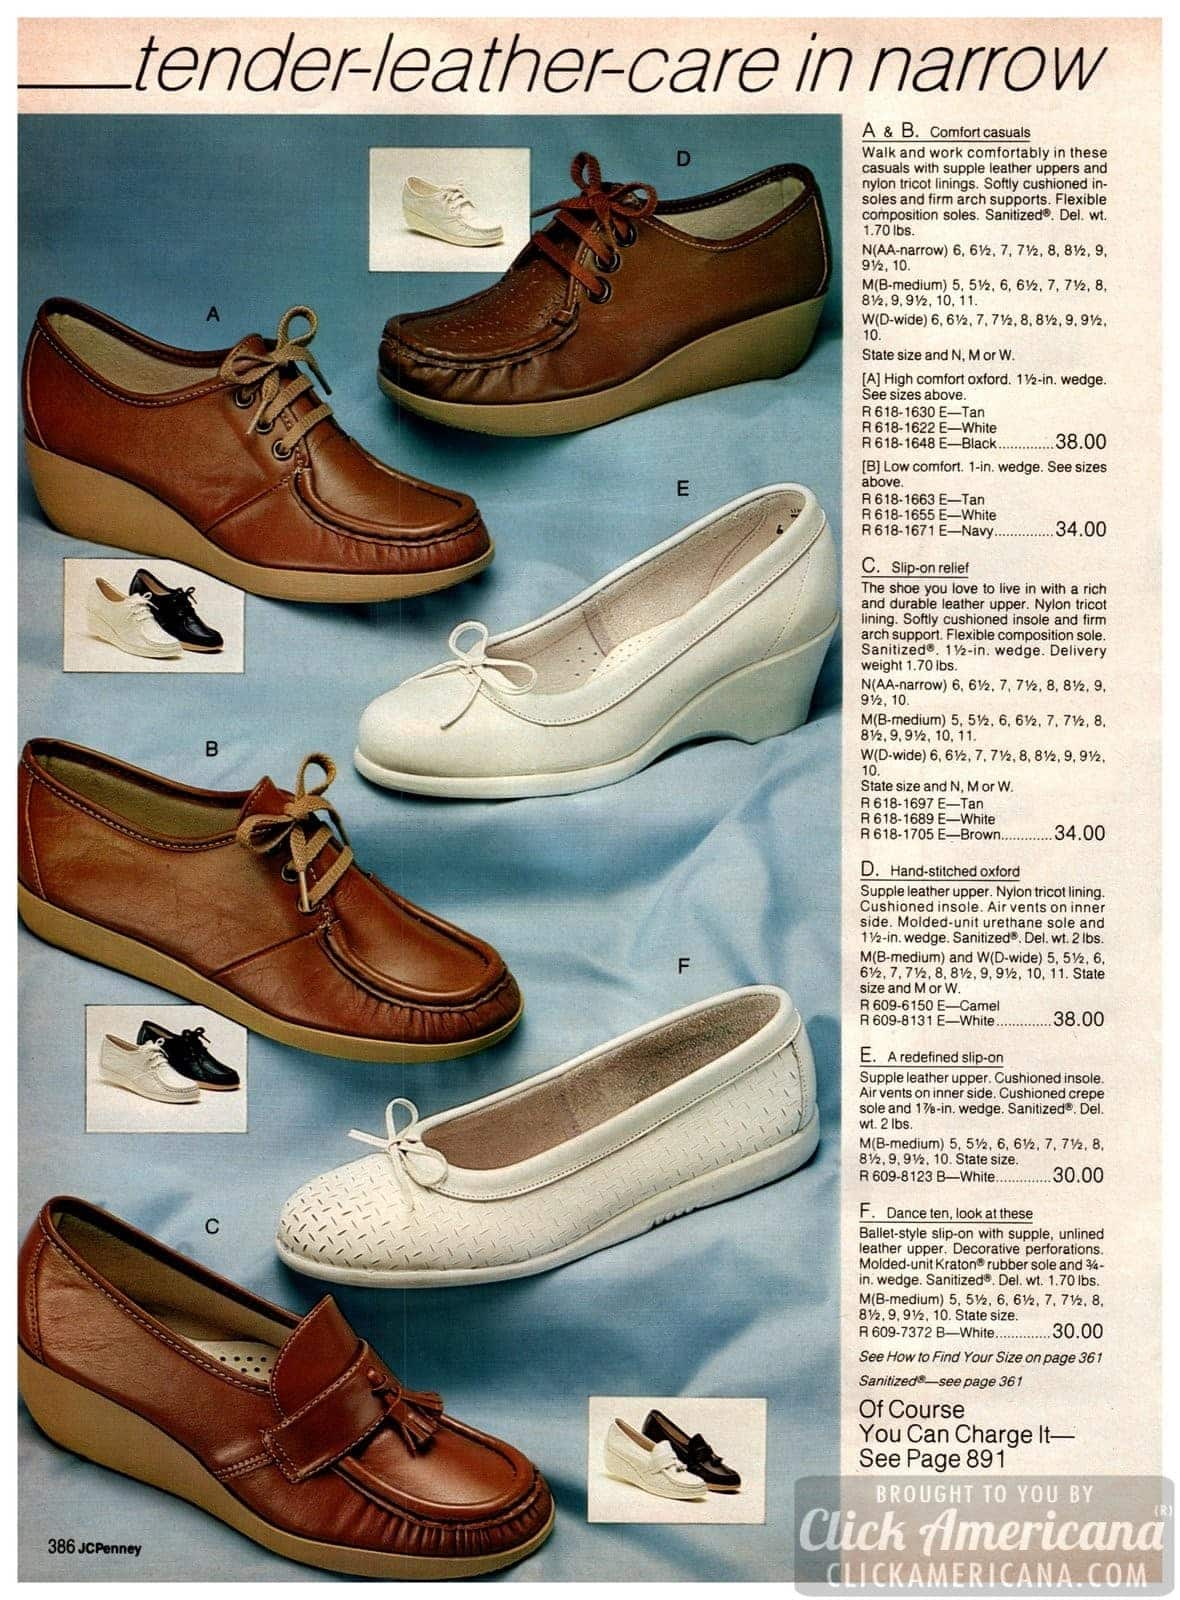 Vintage work shoes for women - comfort casuals, wedge shoes, low-heels and slip-on footwear